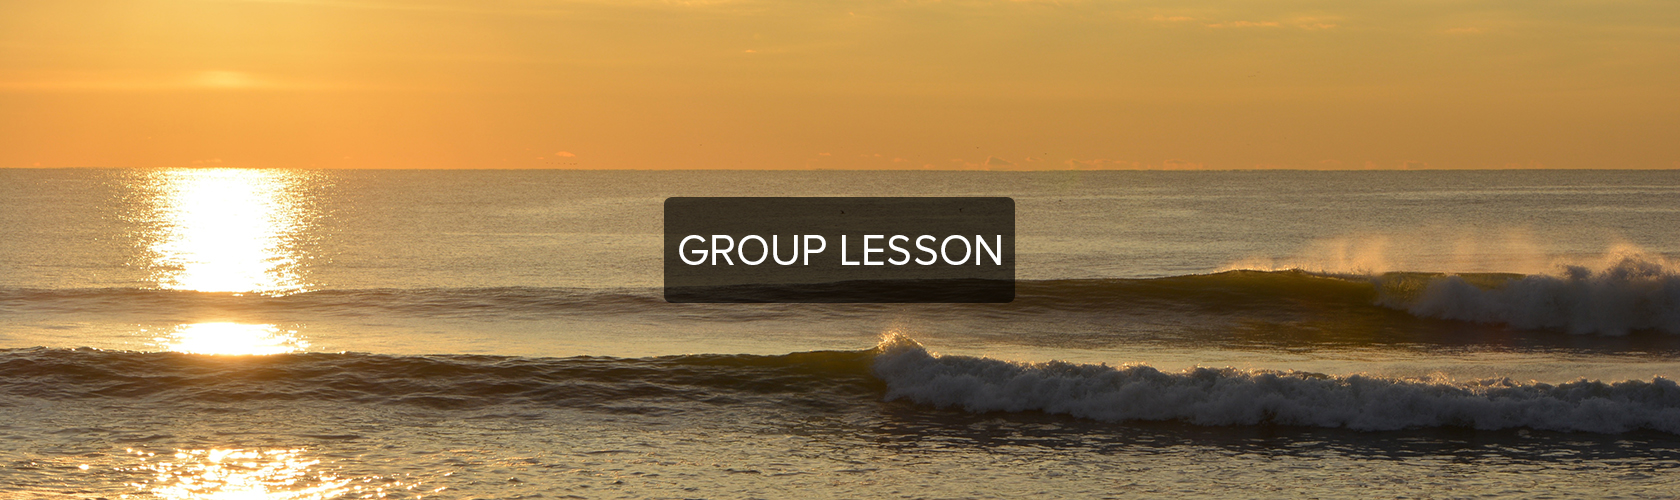 Group Lesson Slider 2018 5.jpg